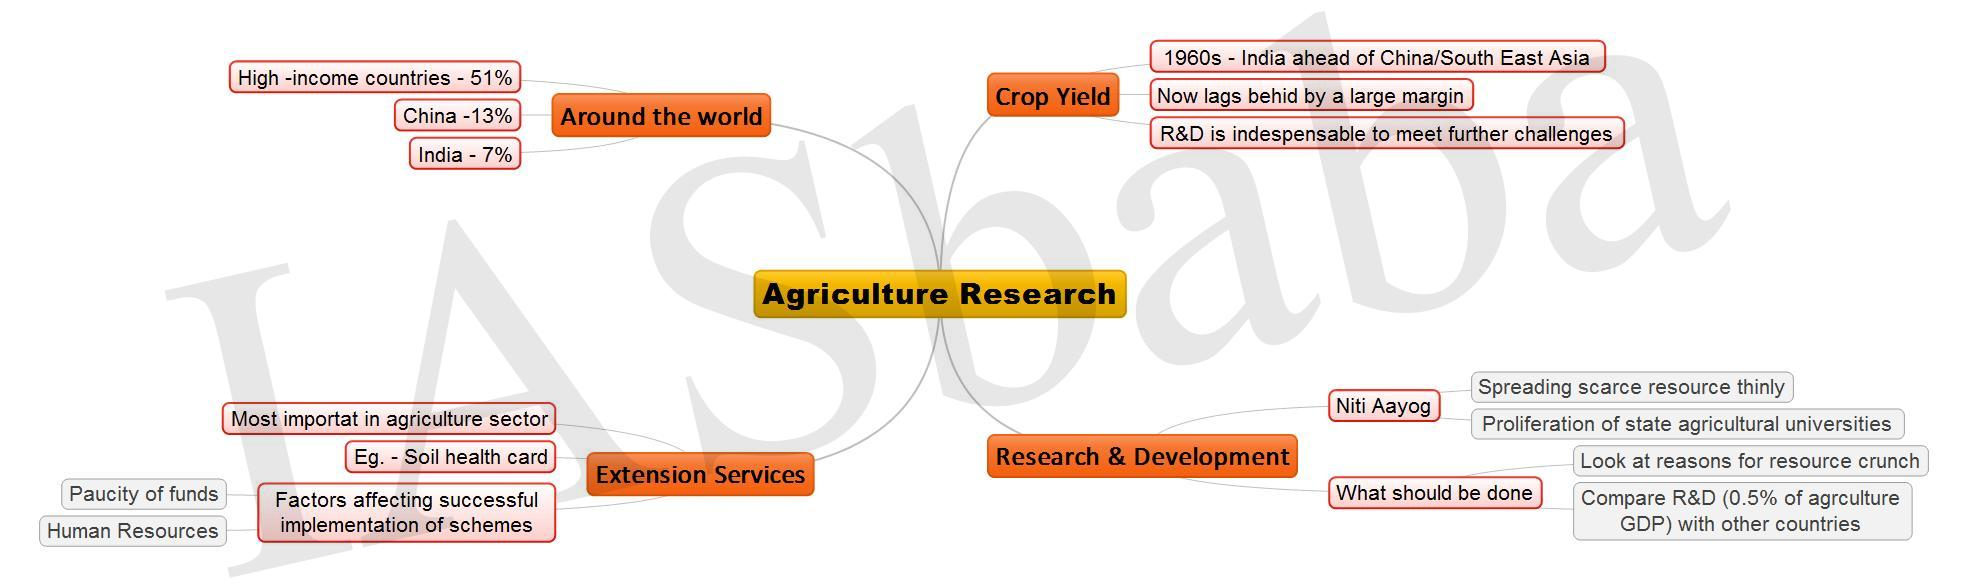 Agriculture Research JPEG